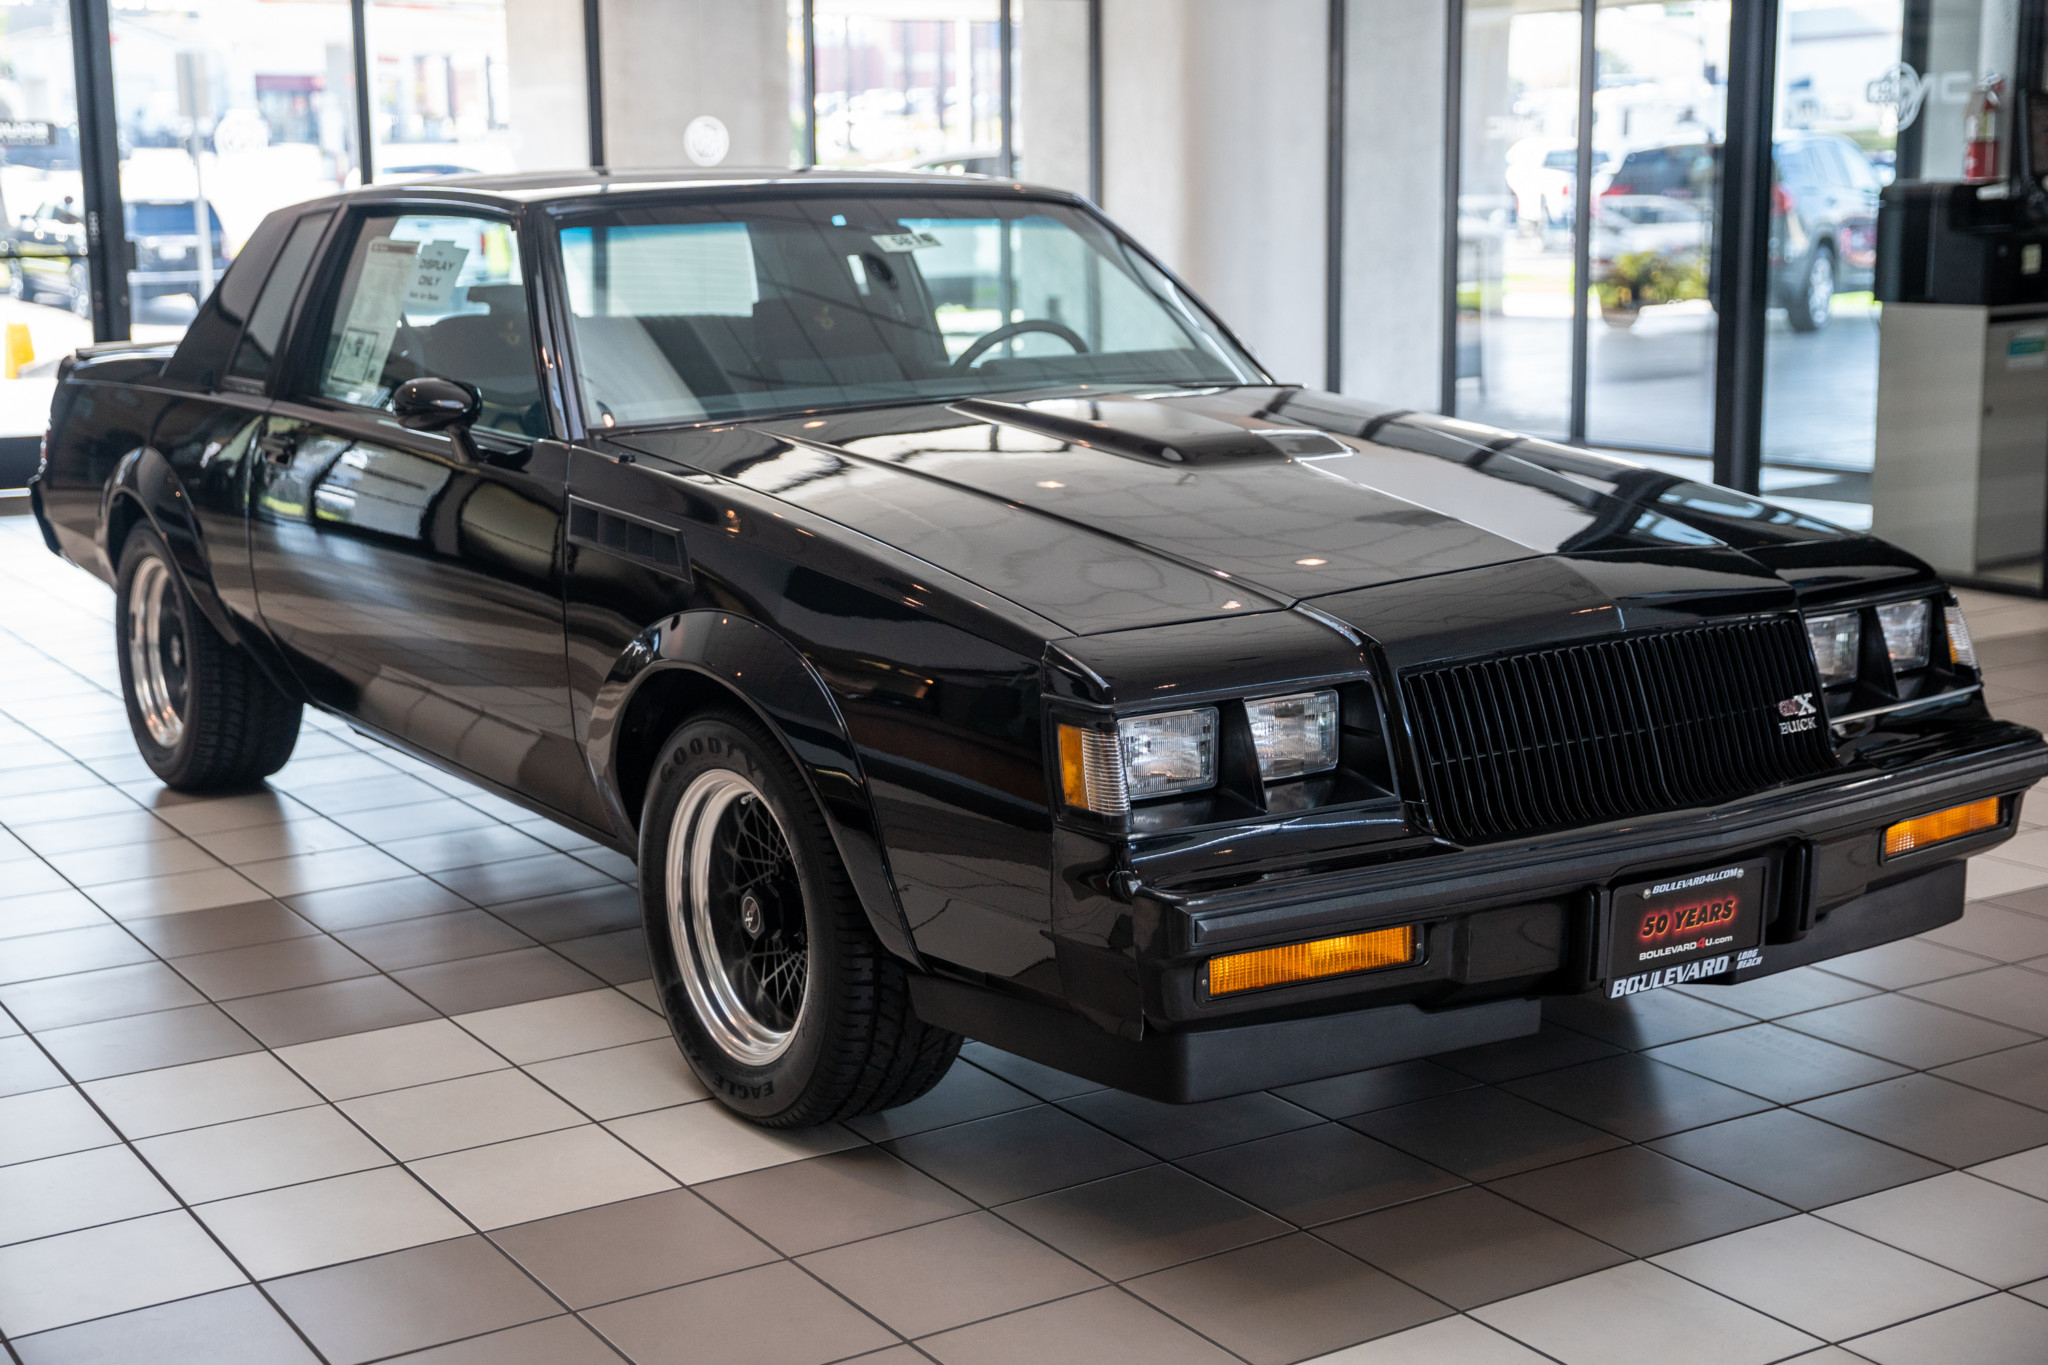 Unsold Buick Gnx With 202 Miles Now For Sale On Bring A Trailer 2022 Buick Regal Gas Mileage, News, Grand National Specs